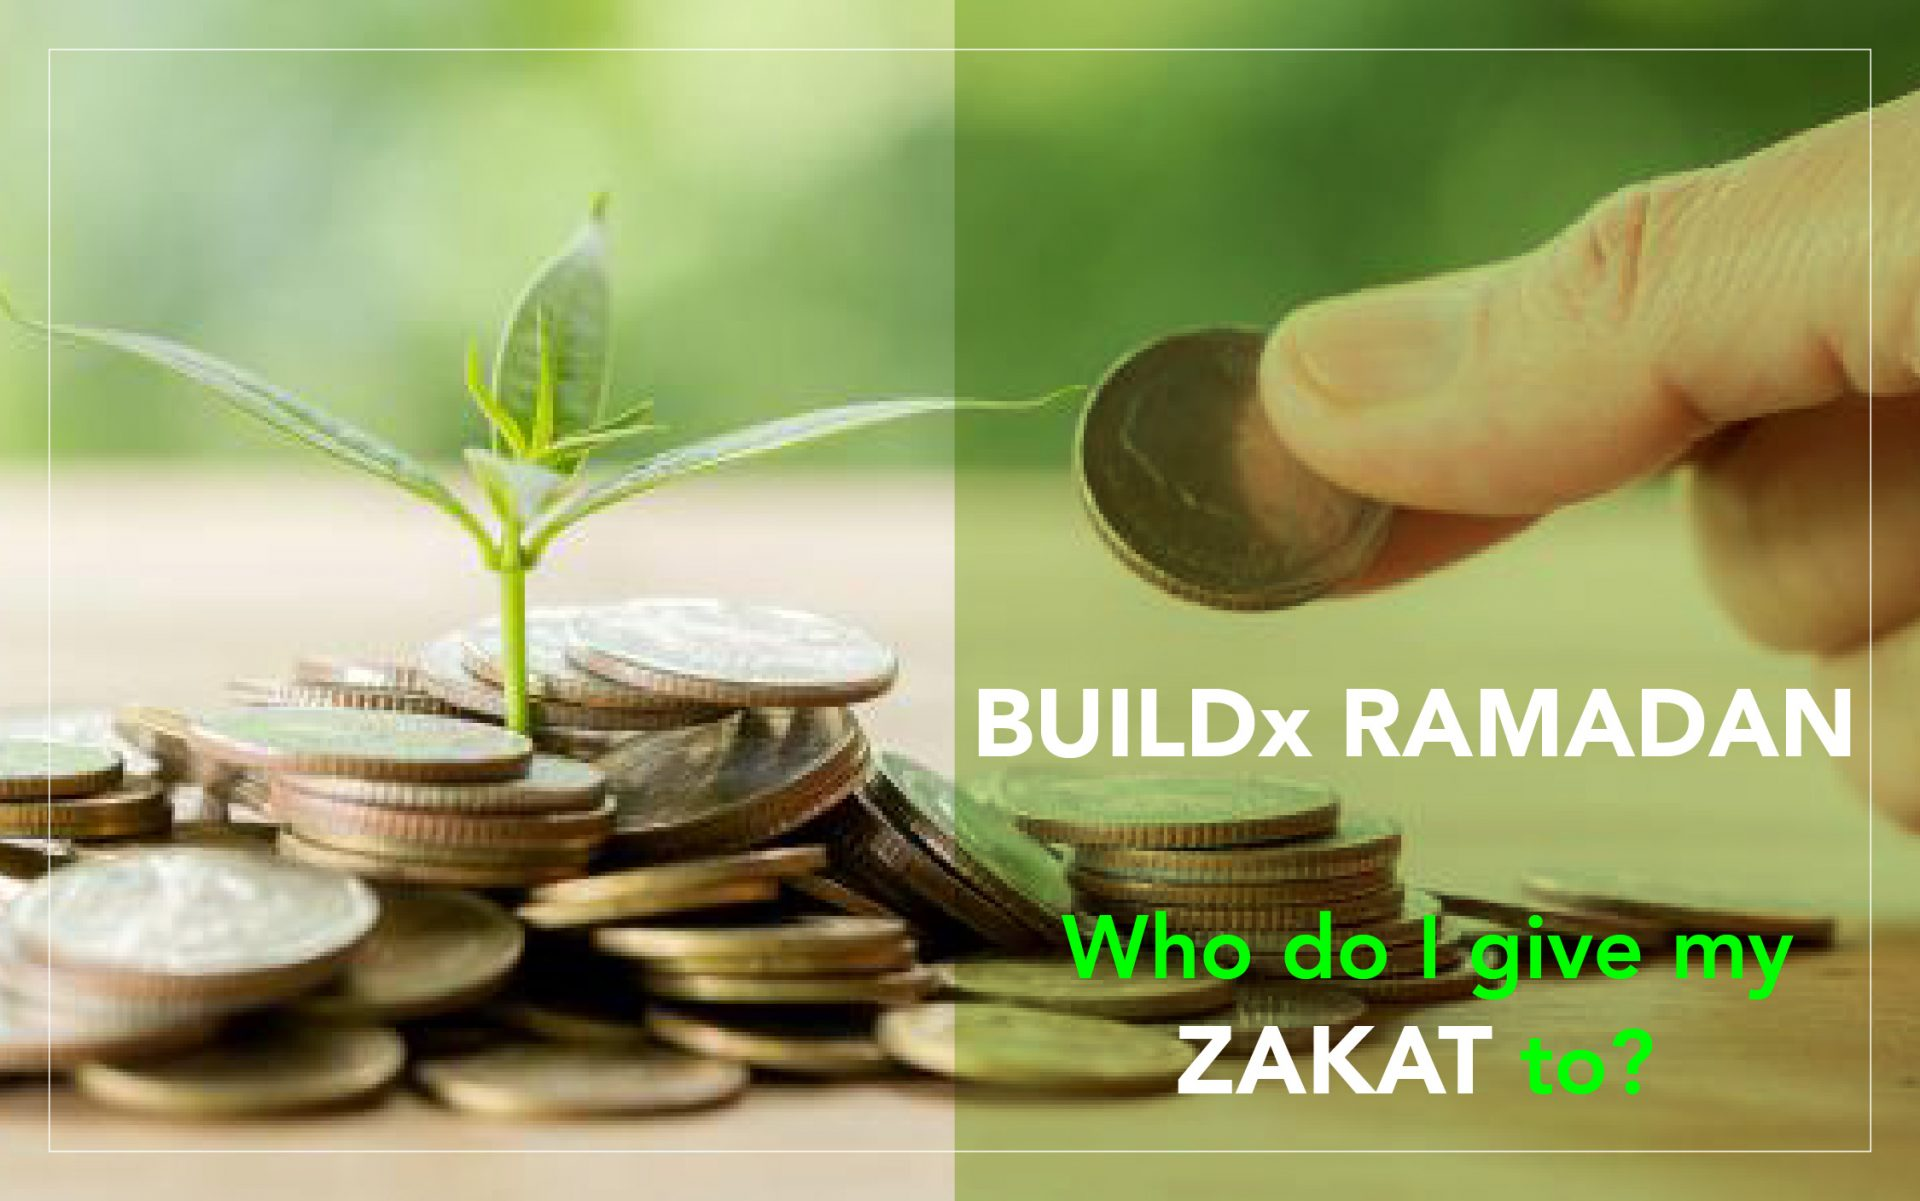 BUILDx Ramadan: Who do I give my Zakat to?